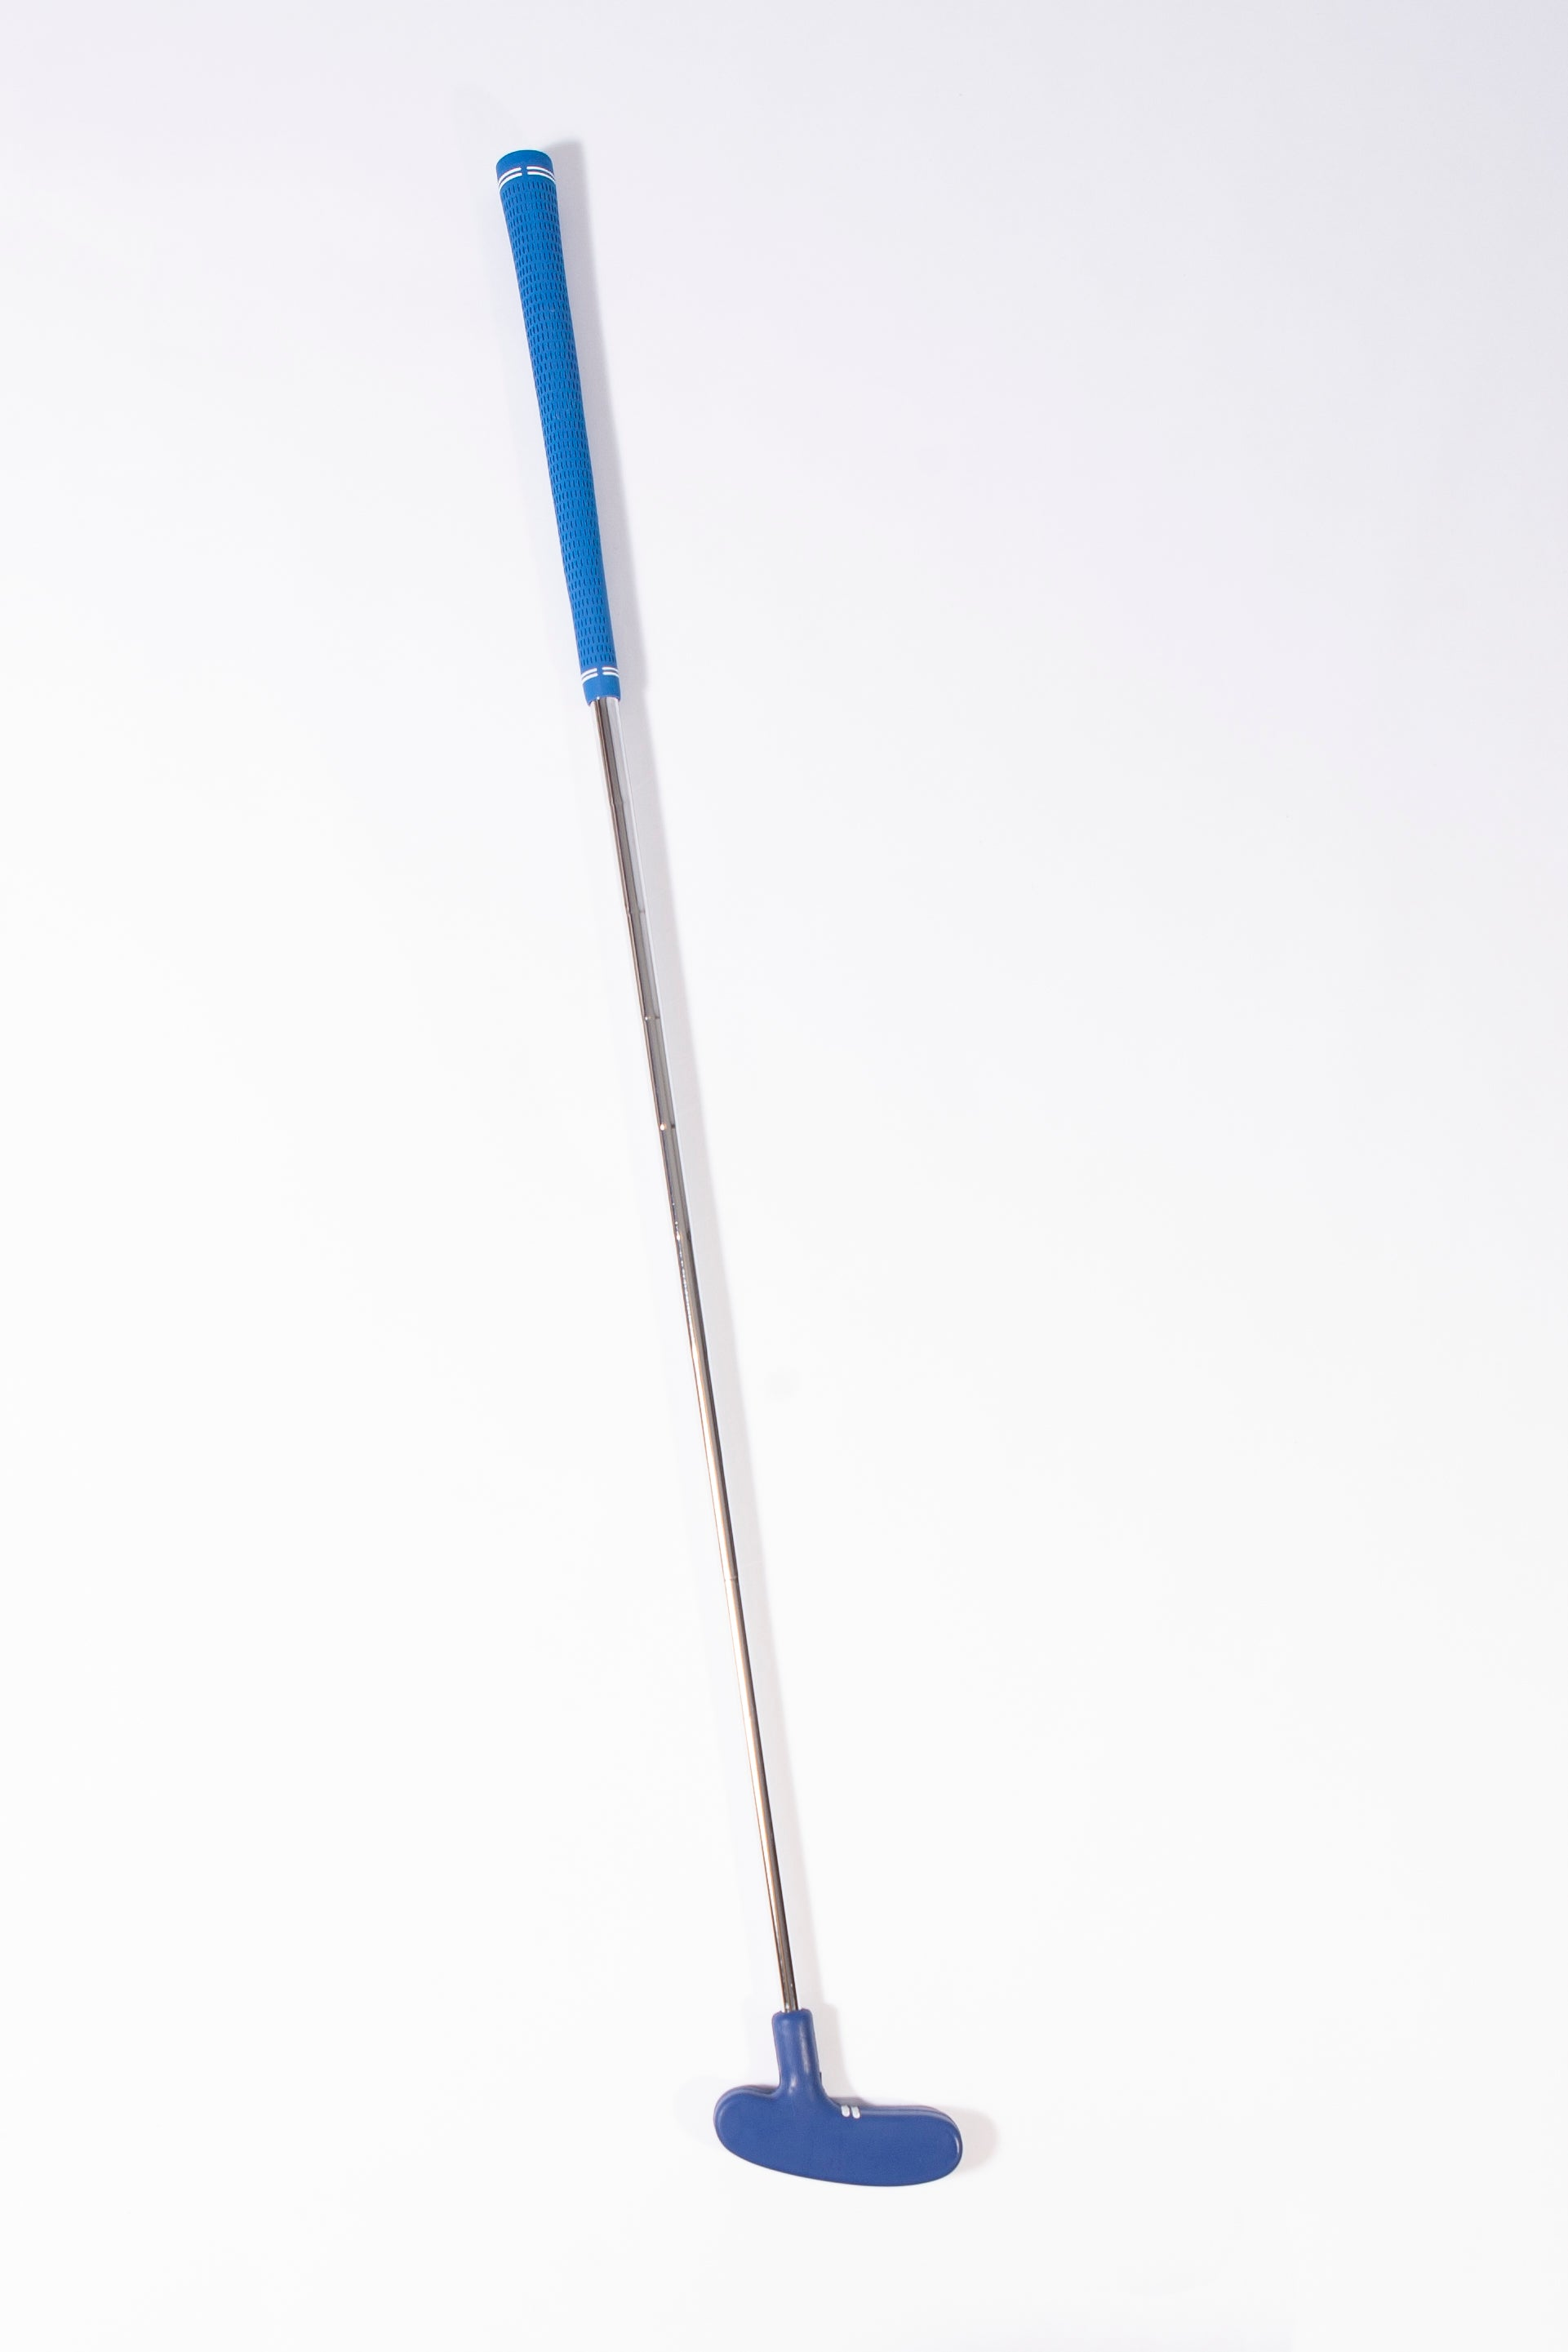 "XL Adult Rubber Headed Putters (Blue 37"") - Event Stuff Ltd Owns Putterfingers.com!"